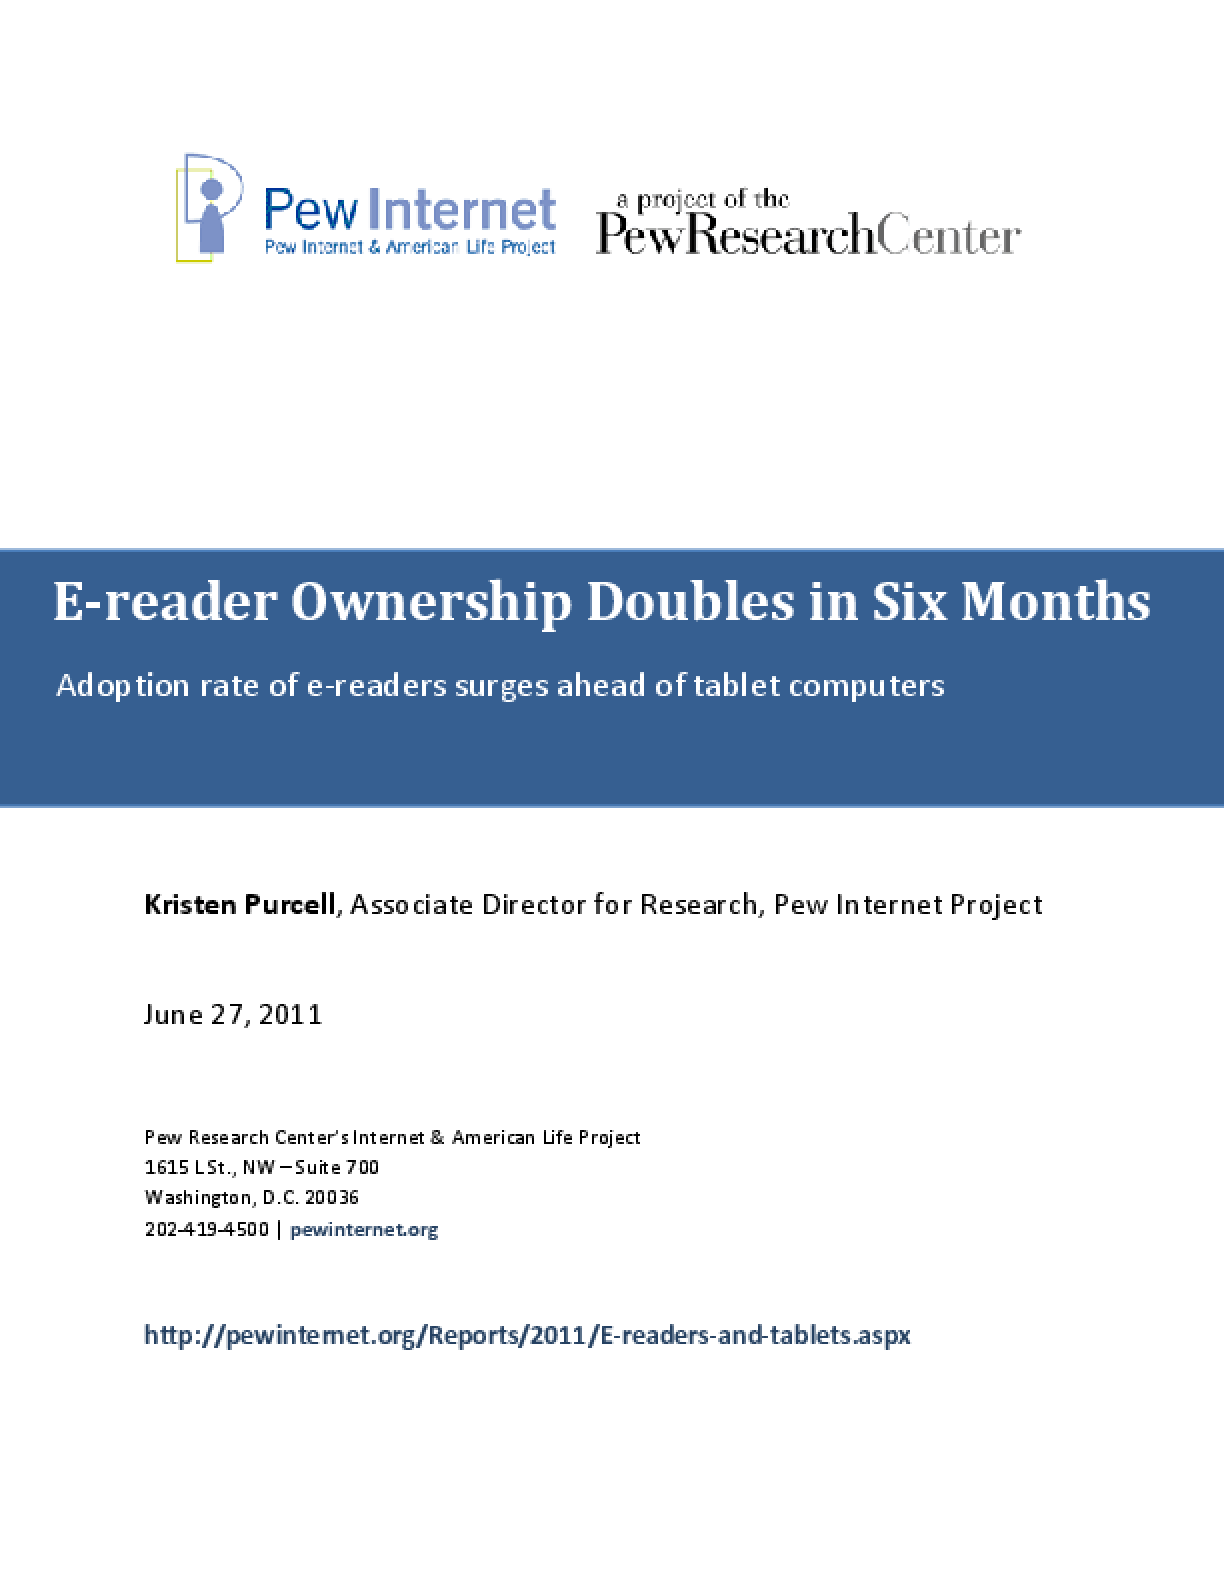 E-Reader Ownership Doubles in Six Months